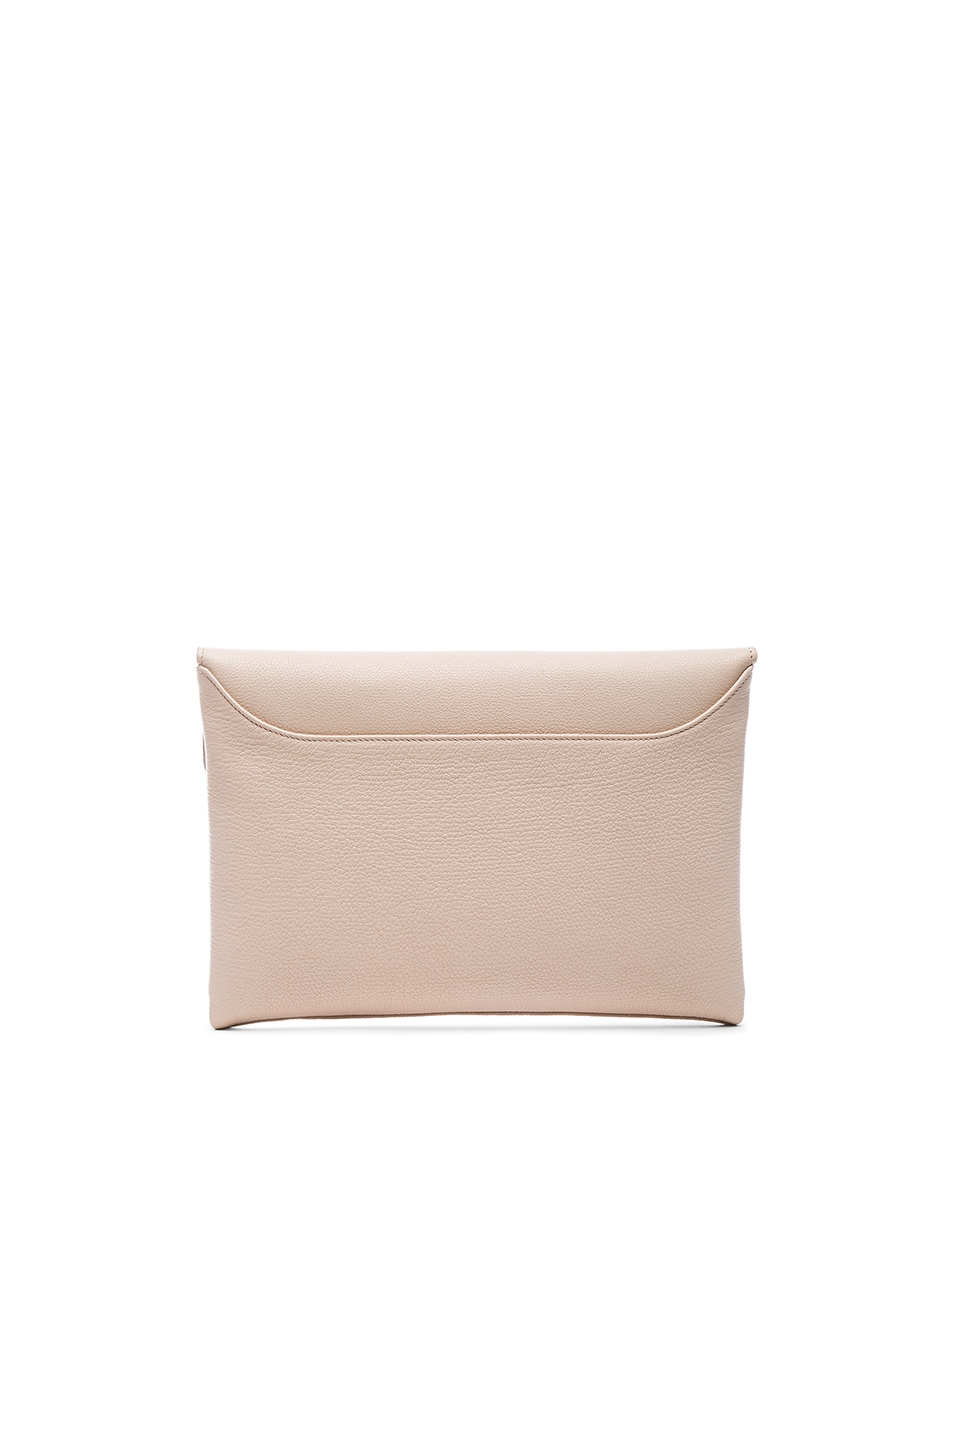 Image 3 of Givenchy Medium Antigona Envelope Clutch in Nude Pink